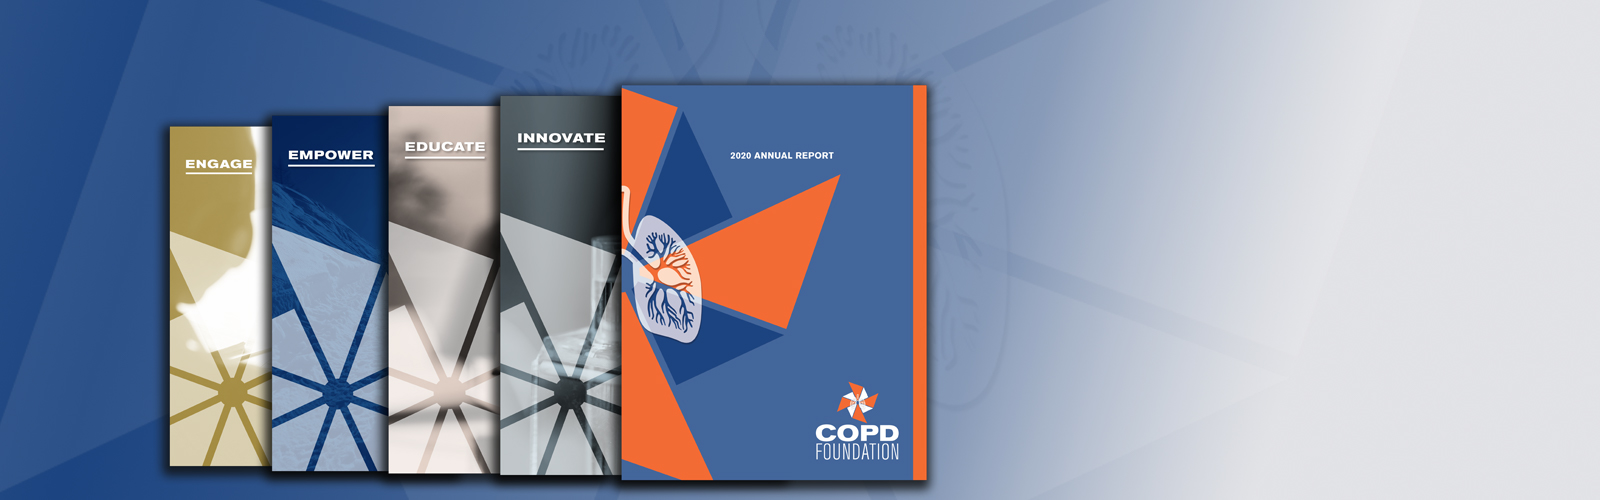 COPD Foundation 2020 Annual Report